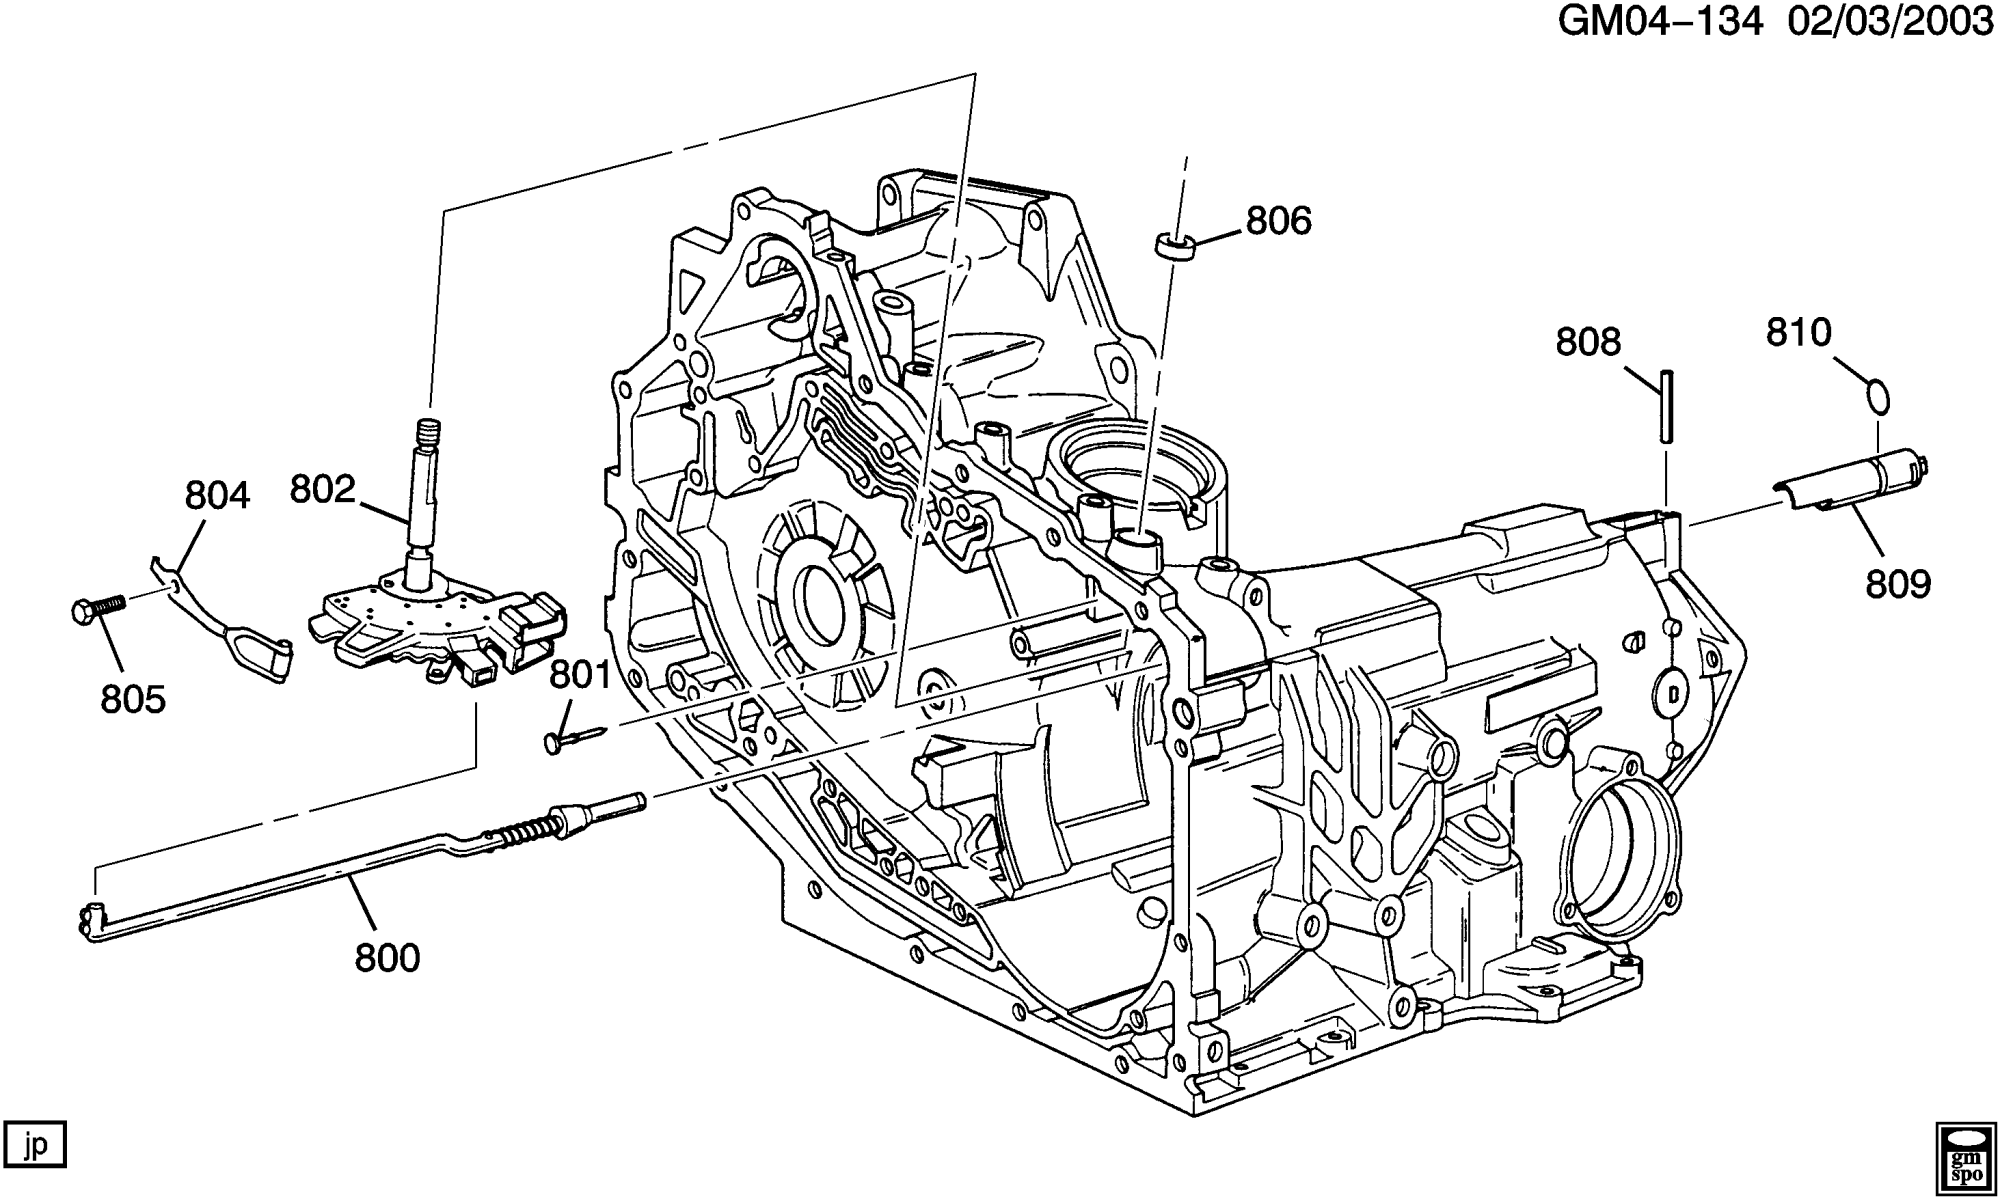 hight resolution of buick rendezvous transmission diagram wiring diagram sort 2004 buick rendezvous transmission diagram buick rendezvous bt automatic